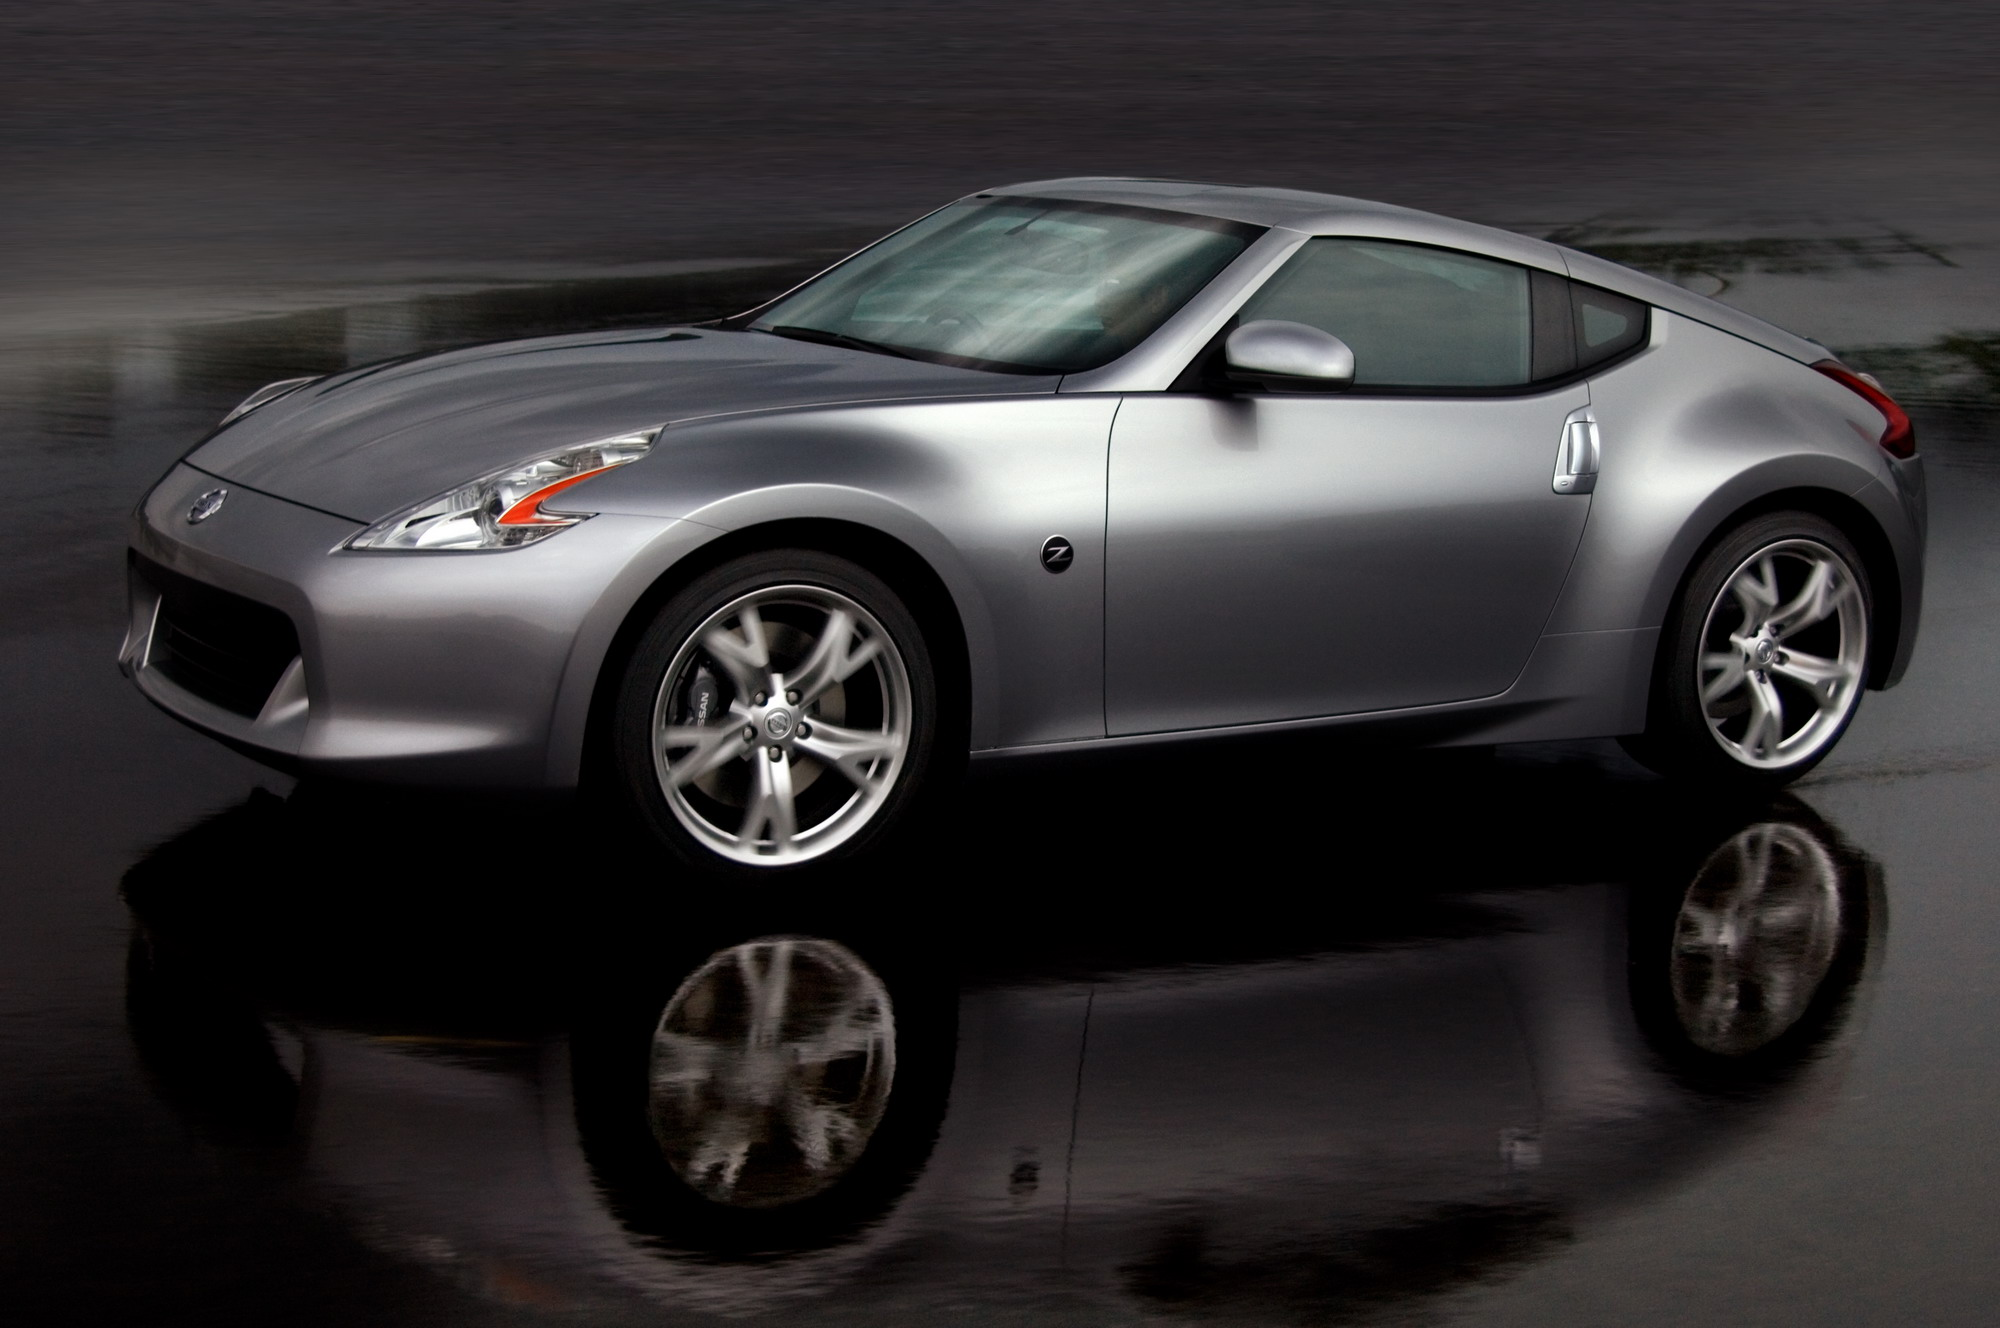 2009 - 2017 nissan 370z review - top speed